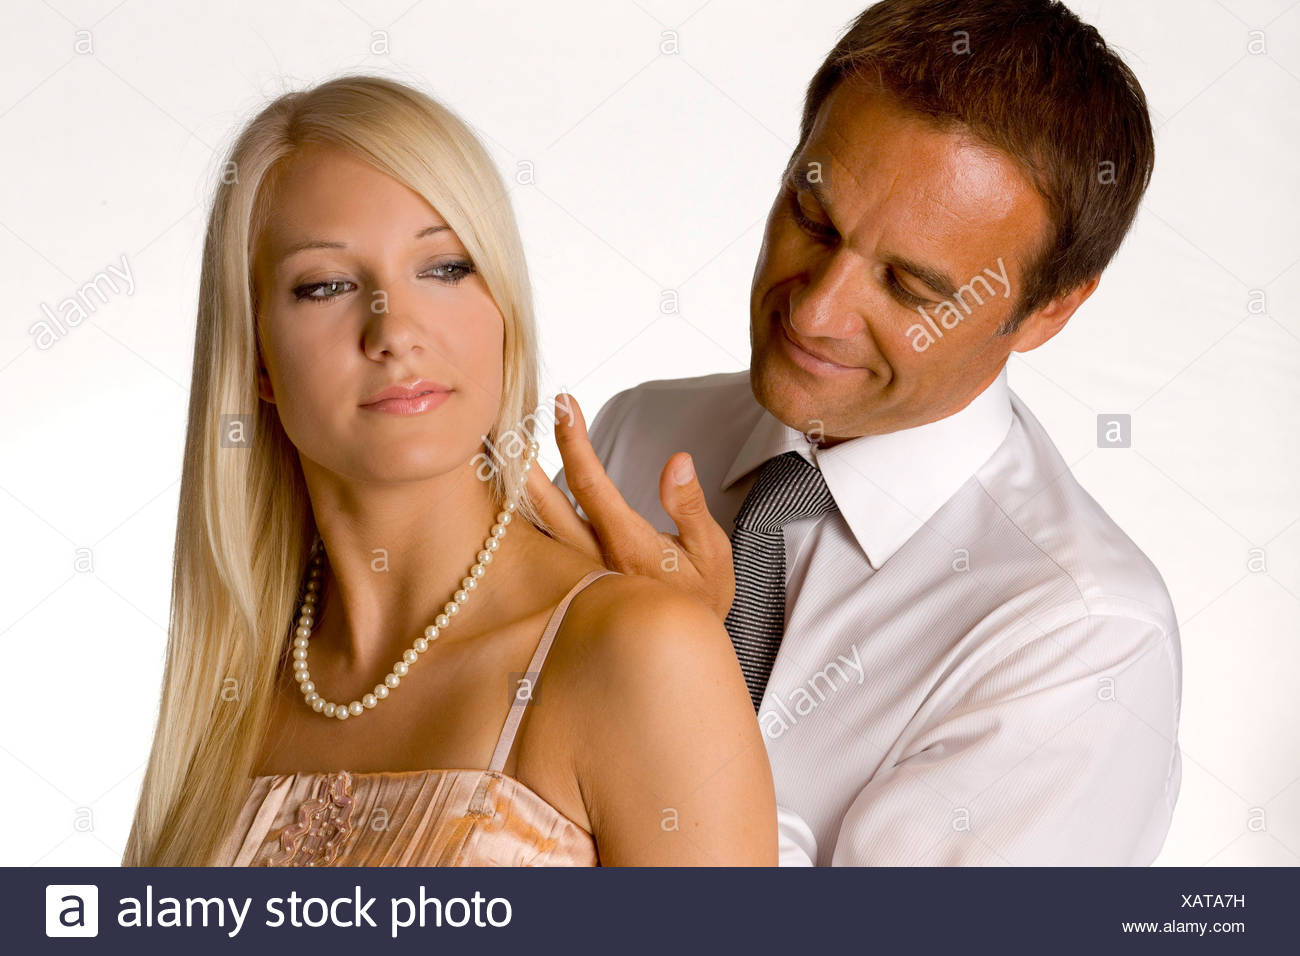 older man putting on a necklace to his younger girlfriend - Stock Image